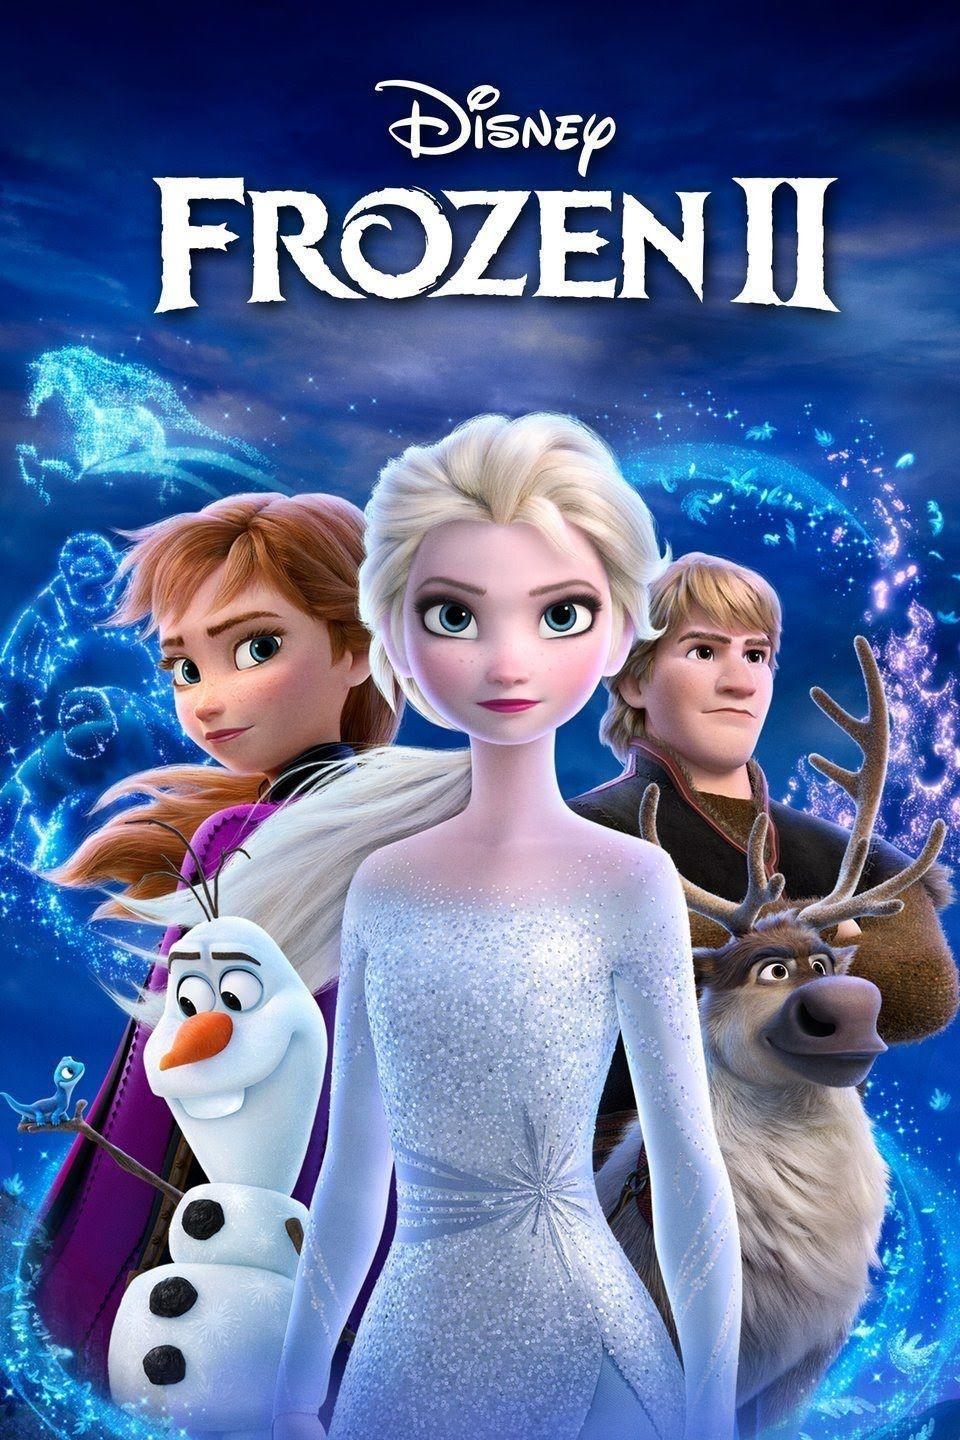 """<p>Who's up for a double-header of the coolest Disney princess sister team ever? In Frozen II, everyone's favorite Arendelle girls are back (with Olaf, Sven, and Kristoff, too), and this time they're on a wild adventure through enchanted forests and beyond to save the kingdom.</p><p><a class=""""link rapid-noclick-resp"""" href=""""https://www.amazon.com/Frozen-2-Evan-Rachel-Wood/dp/B081NCP9LM/?tag=syn-yahoo-20&ascsubtag=%5Bartid%7C10050.g.5060%5Bsrc%7Cyahoo-us"""" rel=""""nofollow noopener"""" target=""""_blank"""" data-ylk=""""slk:STREAM IT ON PRIME"""">STREAM IT ON PRIME</a></p><p><a class=""""link rapid-noclick-resp"""" href=""""https://go.redirectingat.com?id=74968X1596630&url=https%3A%2F%2Fwww.disneyplus.com%2Fmovies%2Ffrozen-2%2F28vdy71kJrjb&sref=https%3A%2F%2Fwww.countryliving.com%2Flife%2Fentertainment%2Fg5060%2Fbest-disney-christmas-movies%2F"""" rel=""""nofollow noopener"""" target=""""_blank"""" data-ylk=""""slk:STREAM IT ON DISNEY+"""">STREAM IT ON DISNEY+</a><br></p>"""